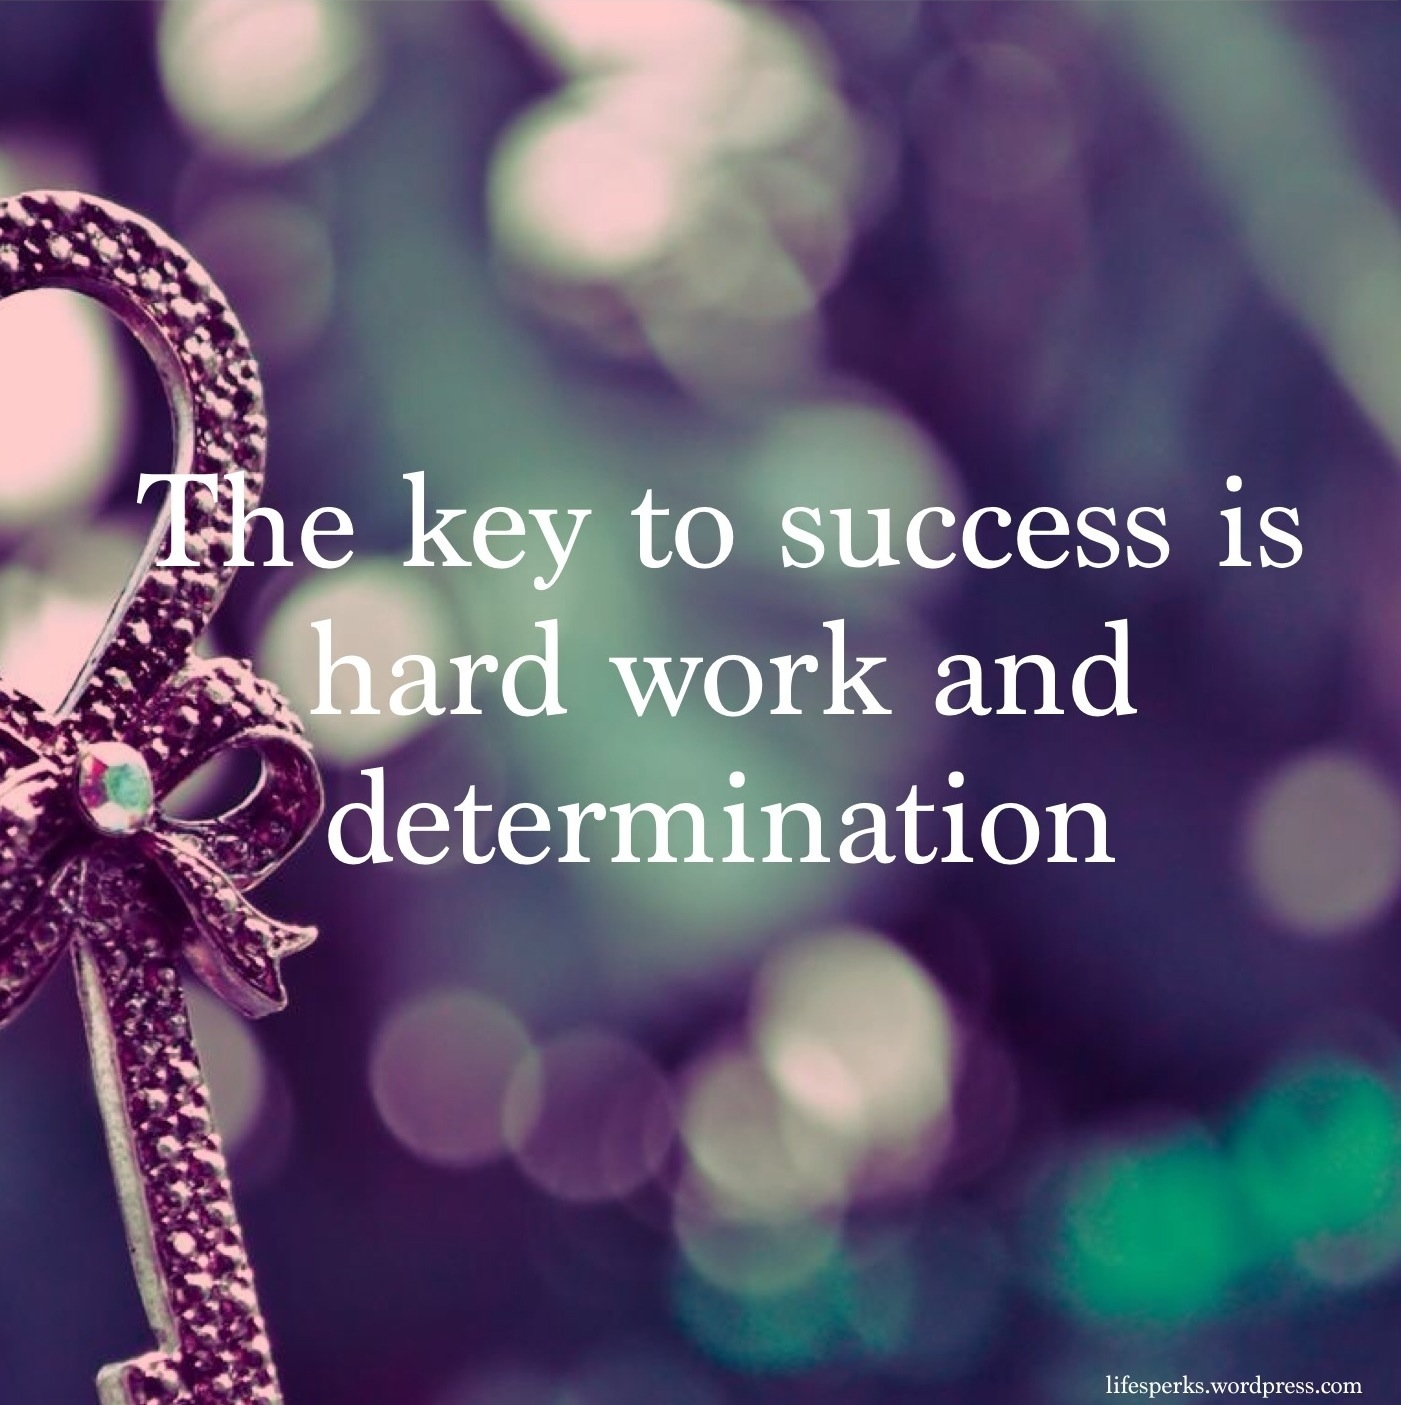 Motivational Quotes About Success: Determination Hard Work Quotes Inspirational. QuotesGram